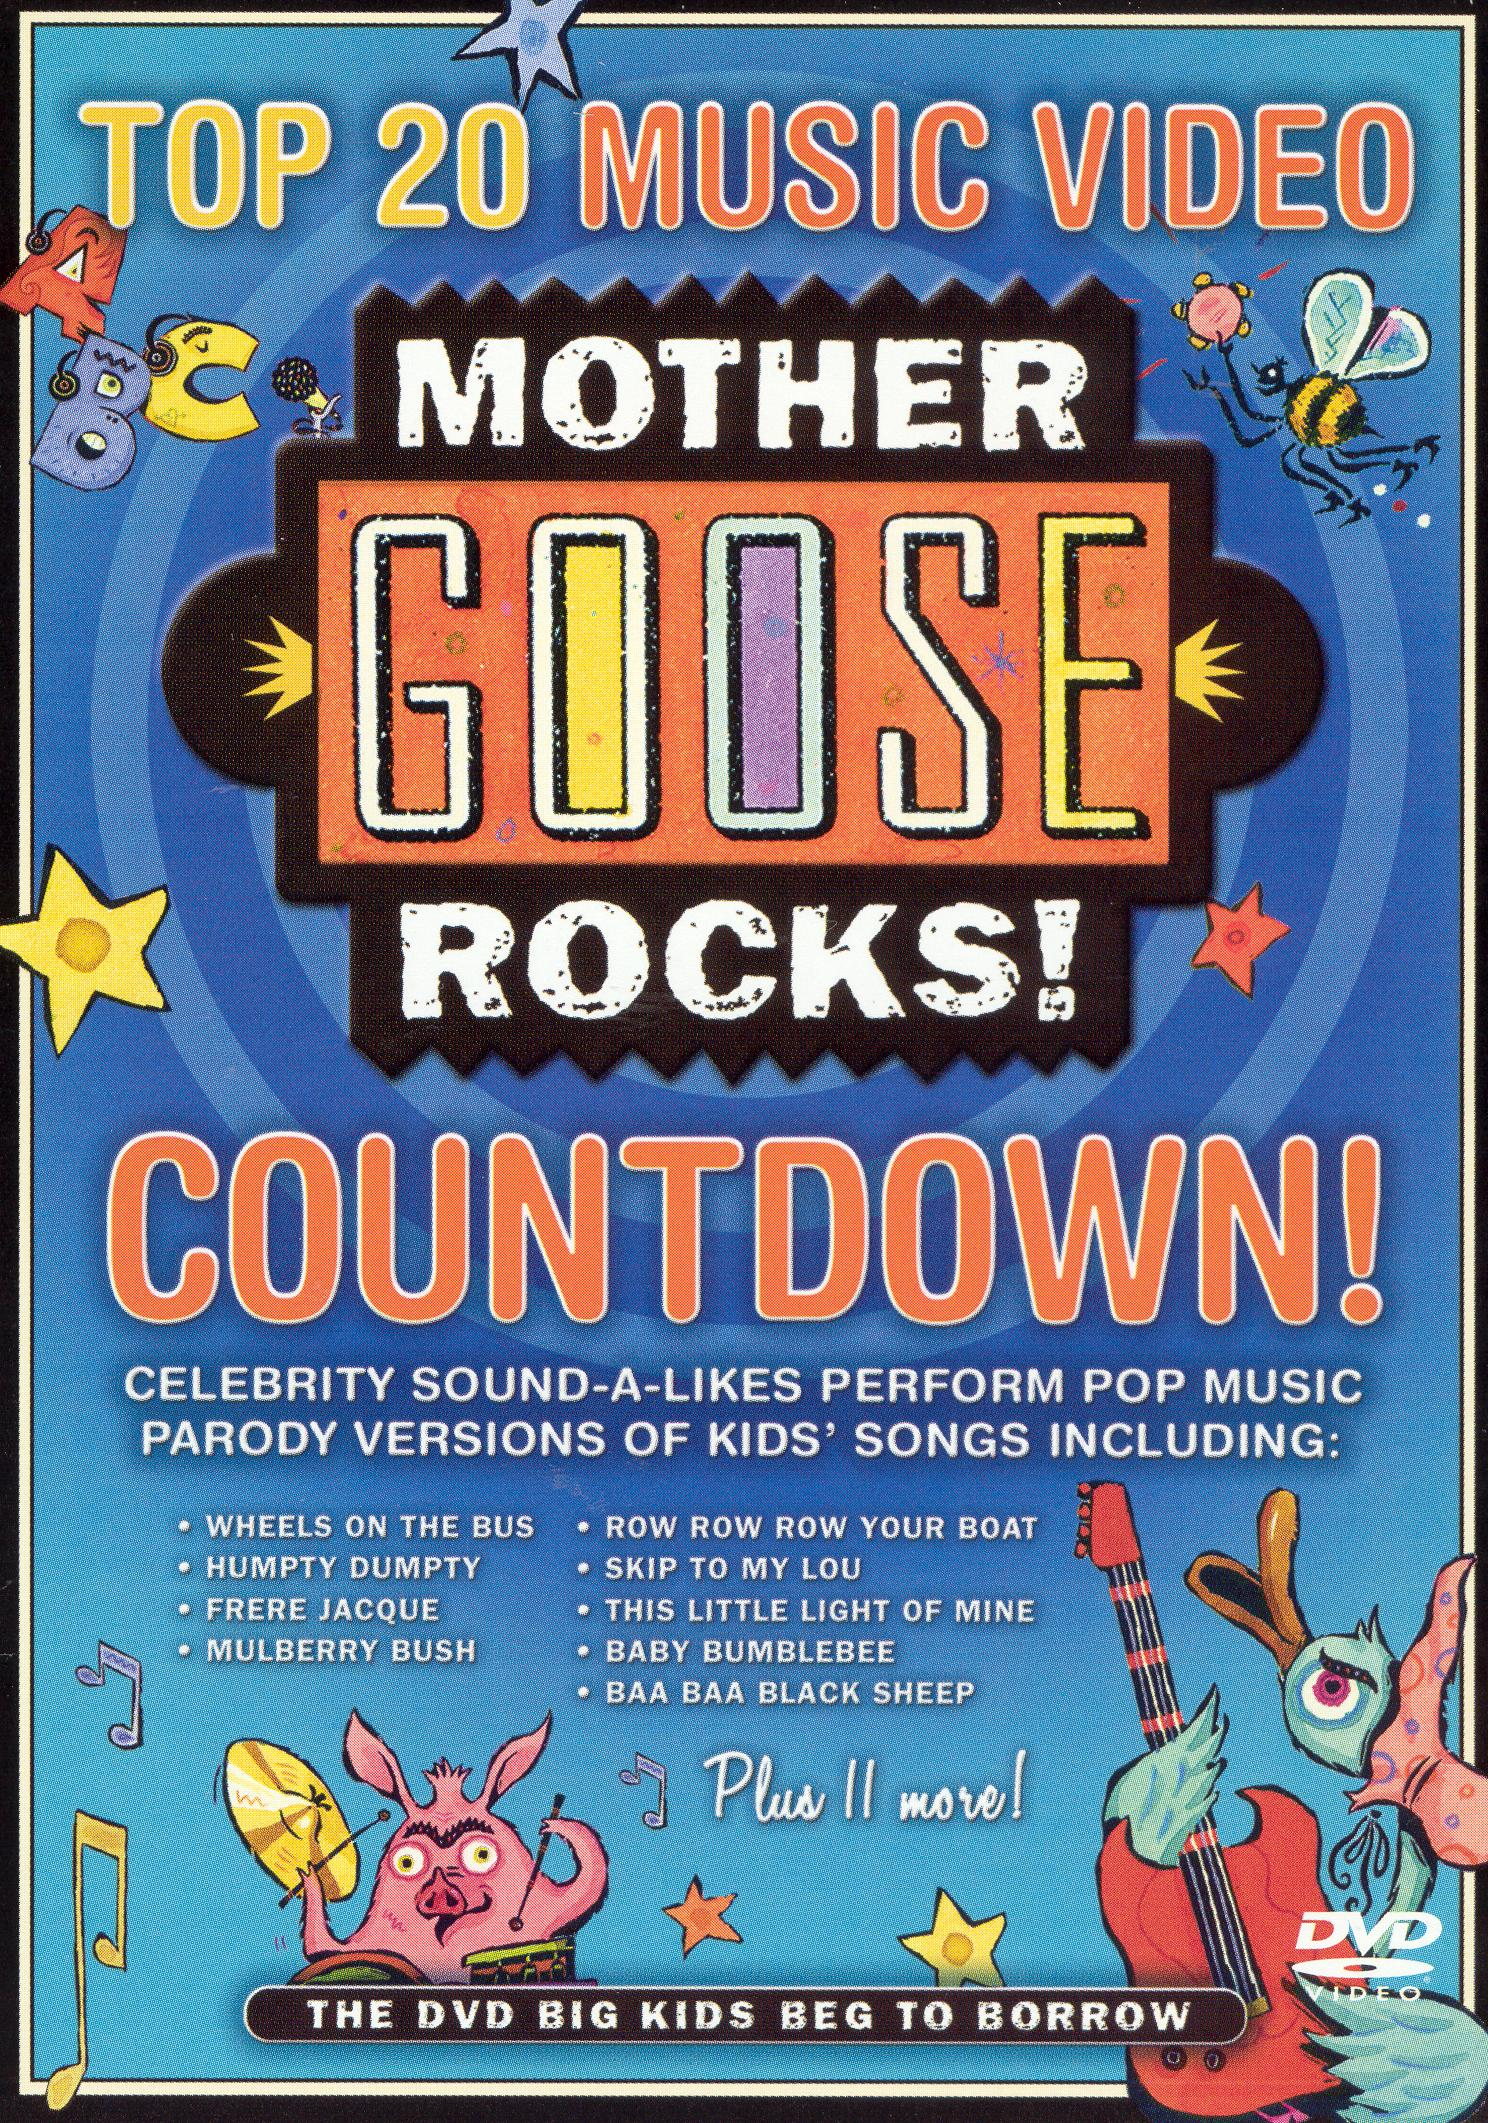 Mother Goose Rocks!: Top 20 Music Video Countdown